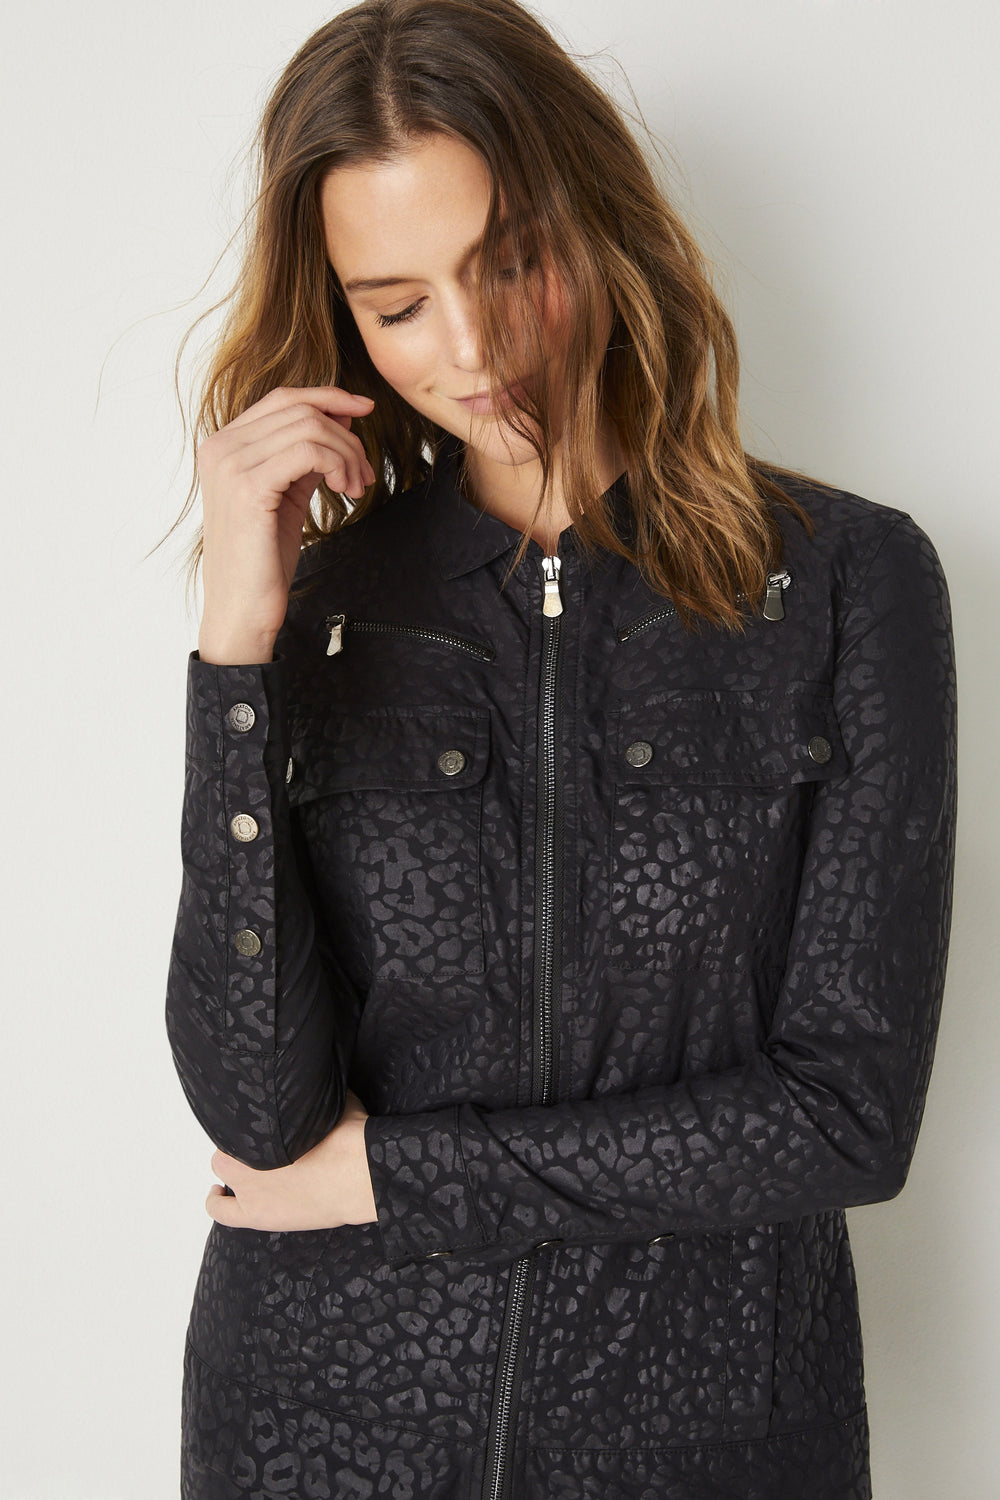 Cheetah Embossed Pattern / Dessin 274||||Spring_Aa0711p_Madeline_Jacket_8202-Cheetah_3009-82.mp4